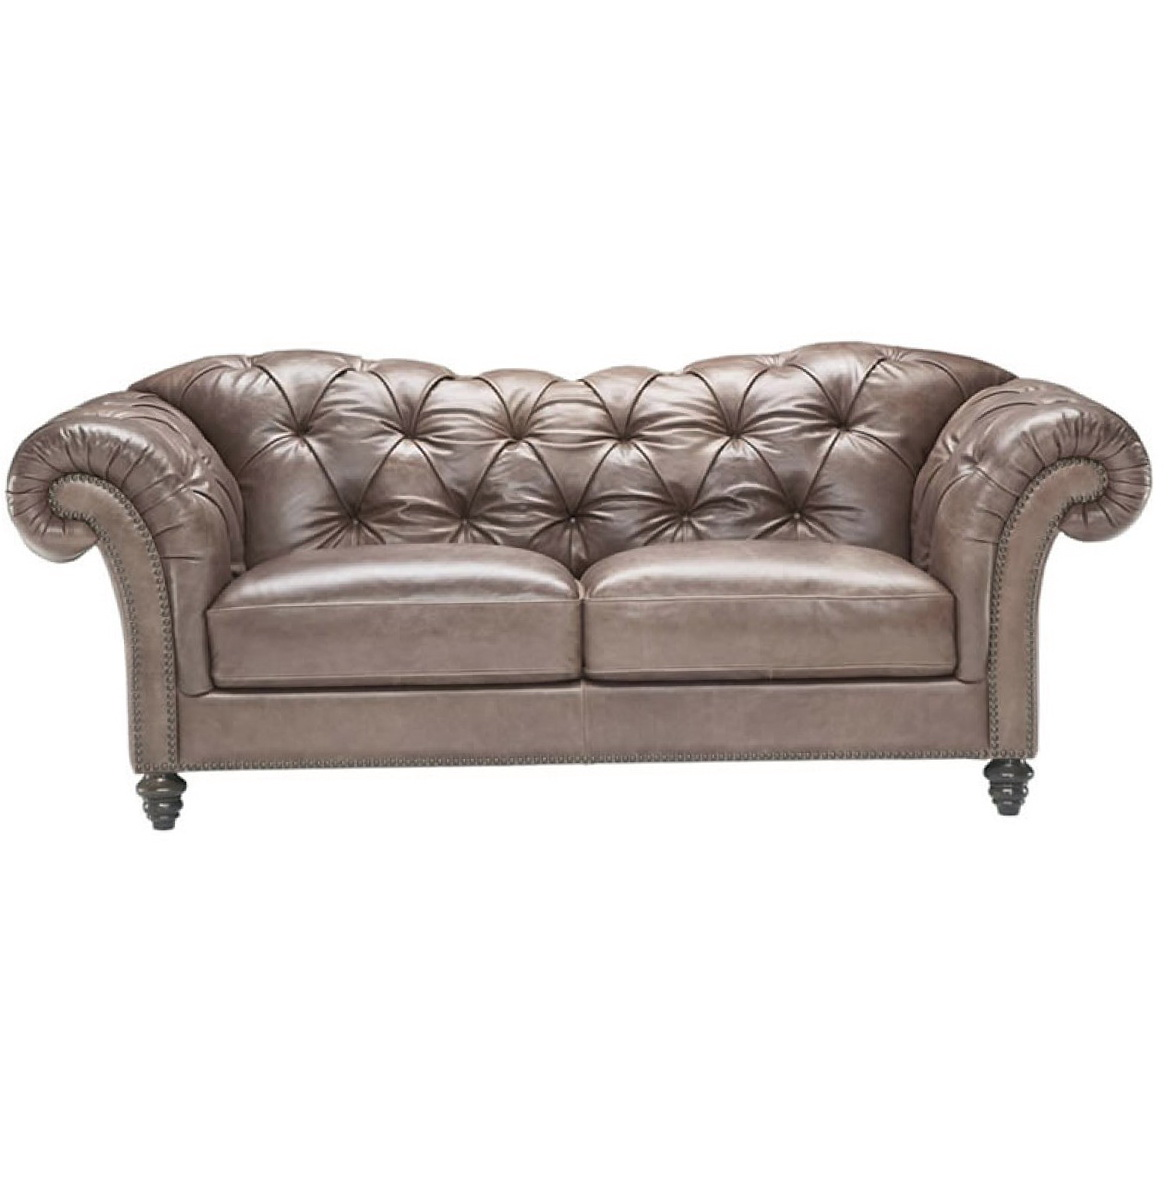 Natuzzi Chesterfield Leather Sofa